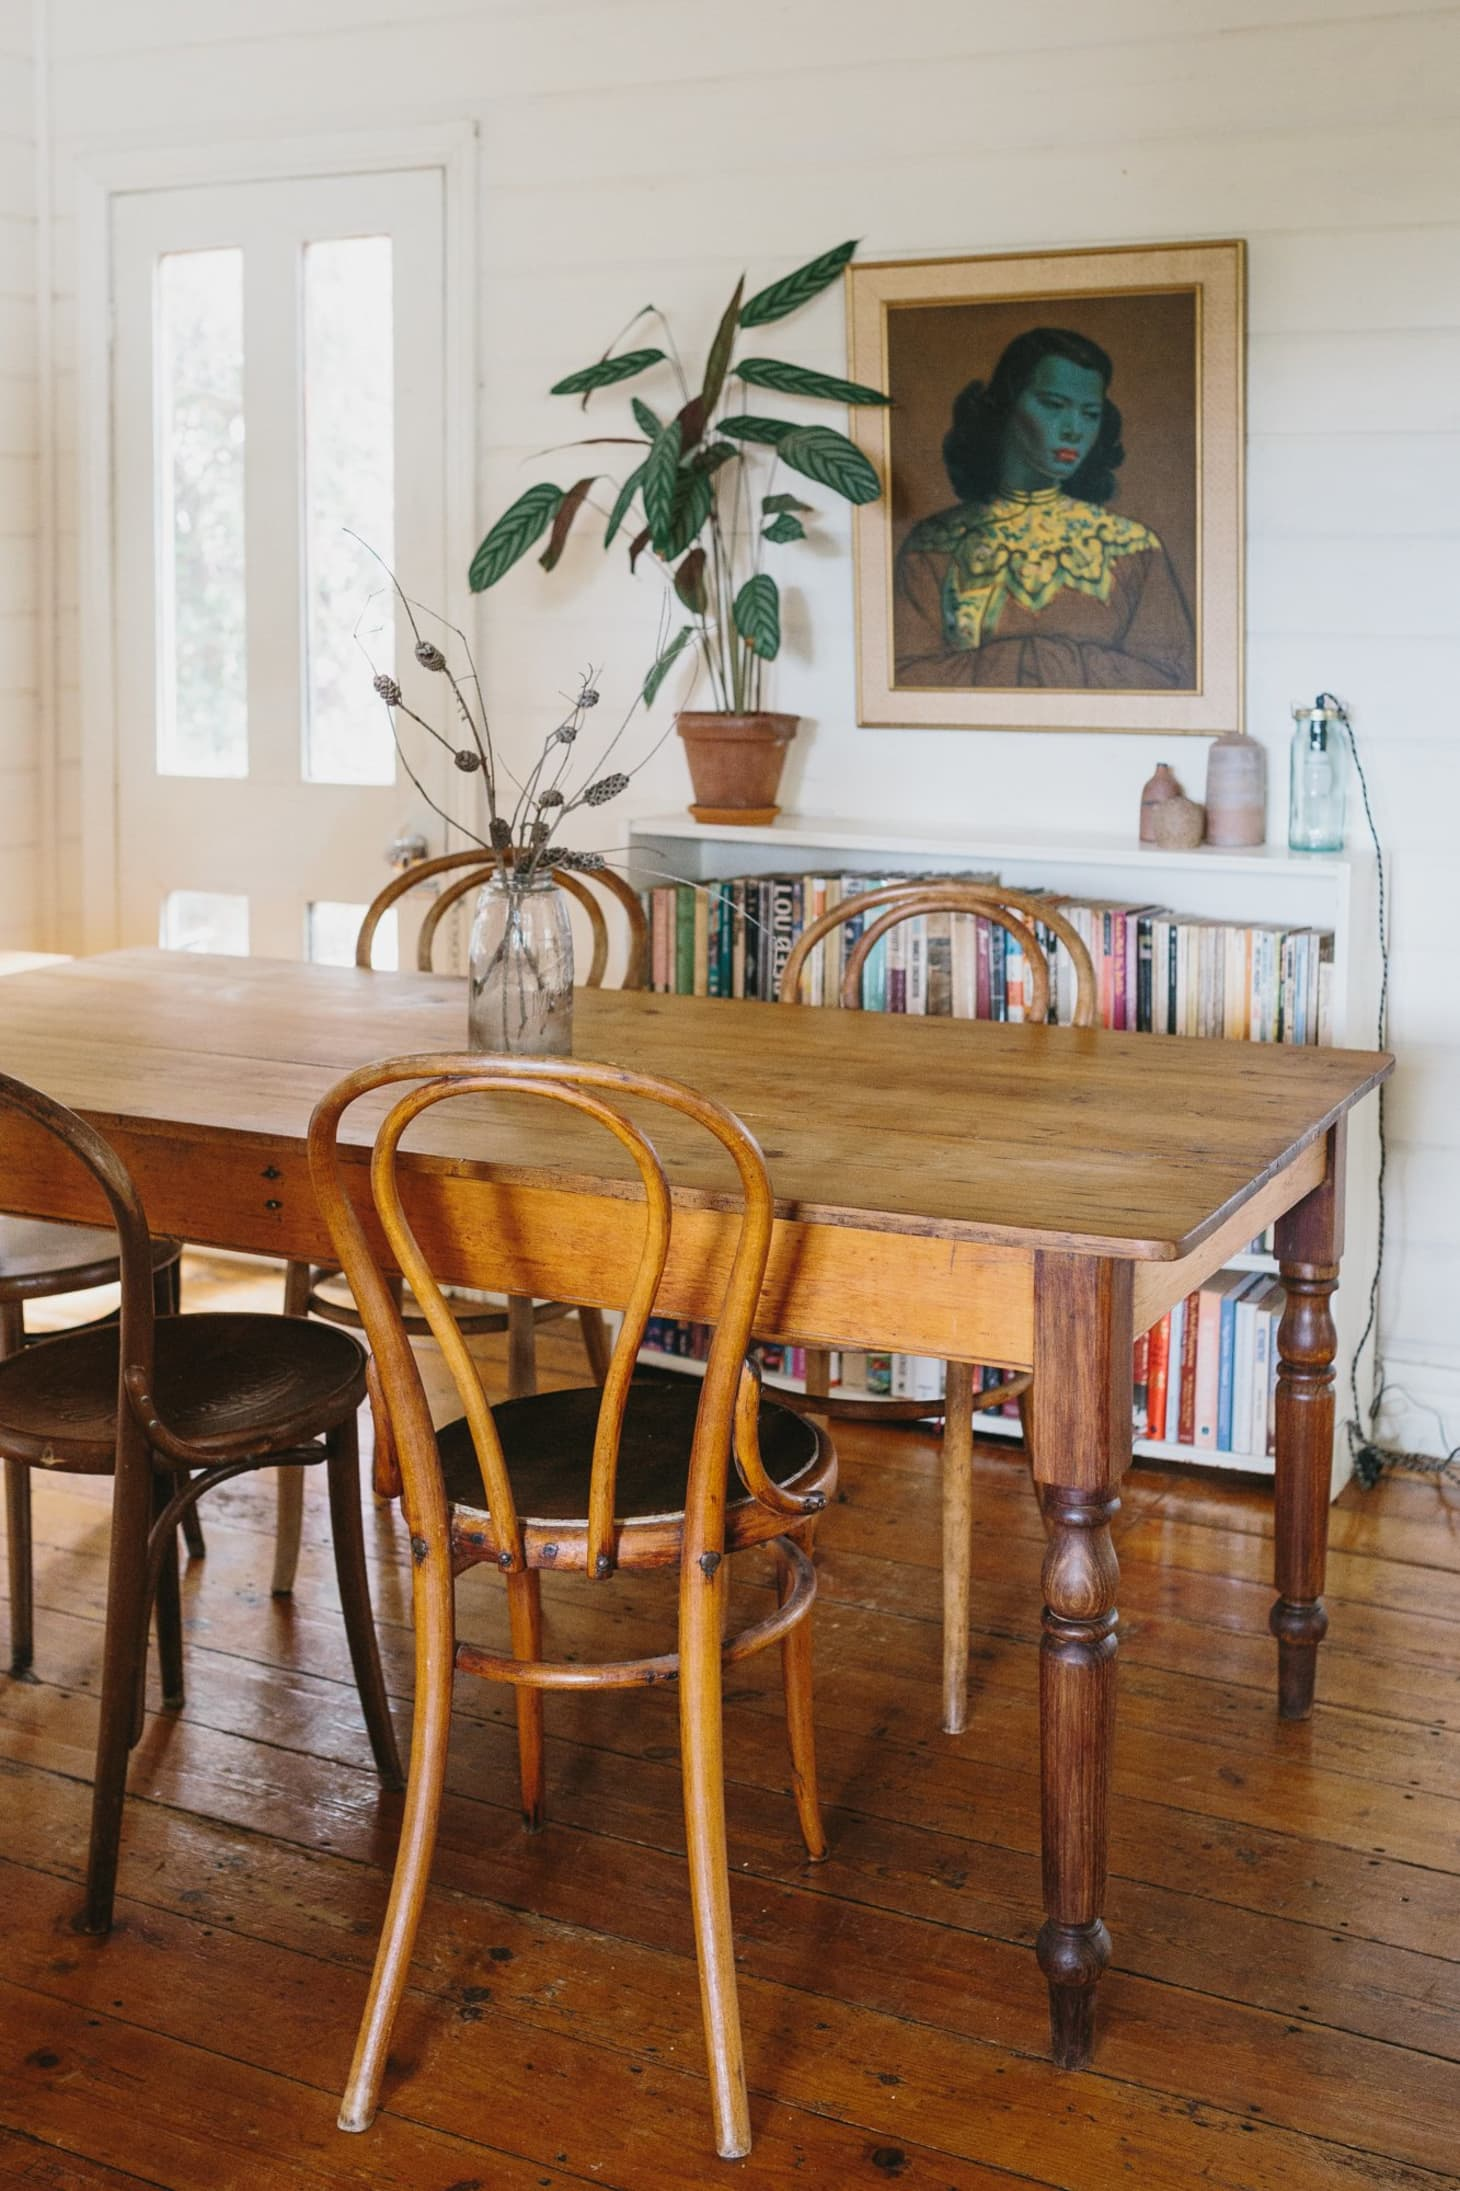 How To Oil Wooden Furniture & Countertops: Tips & Info